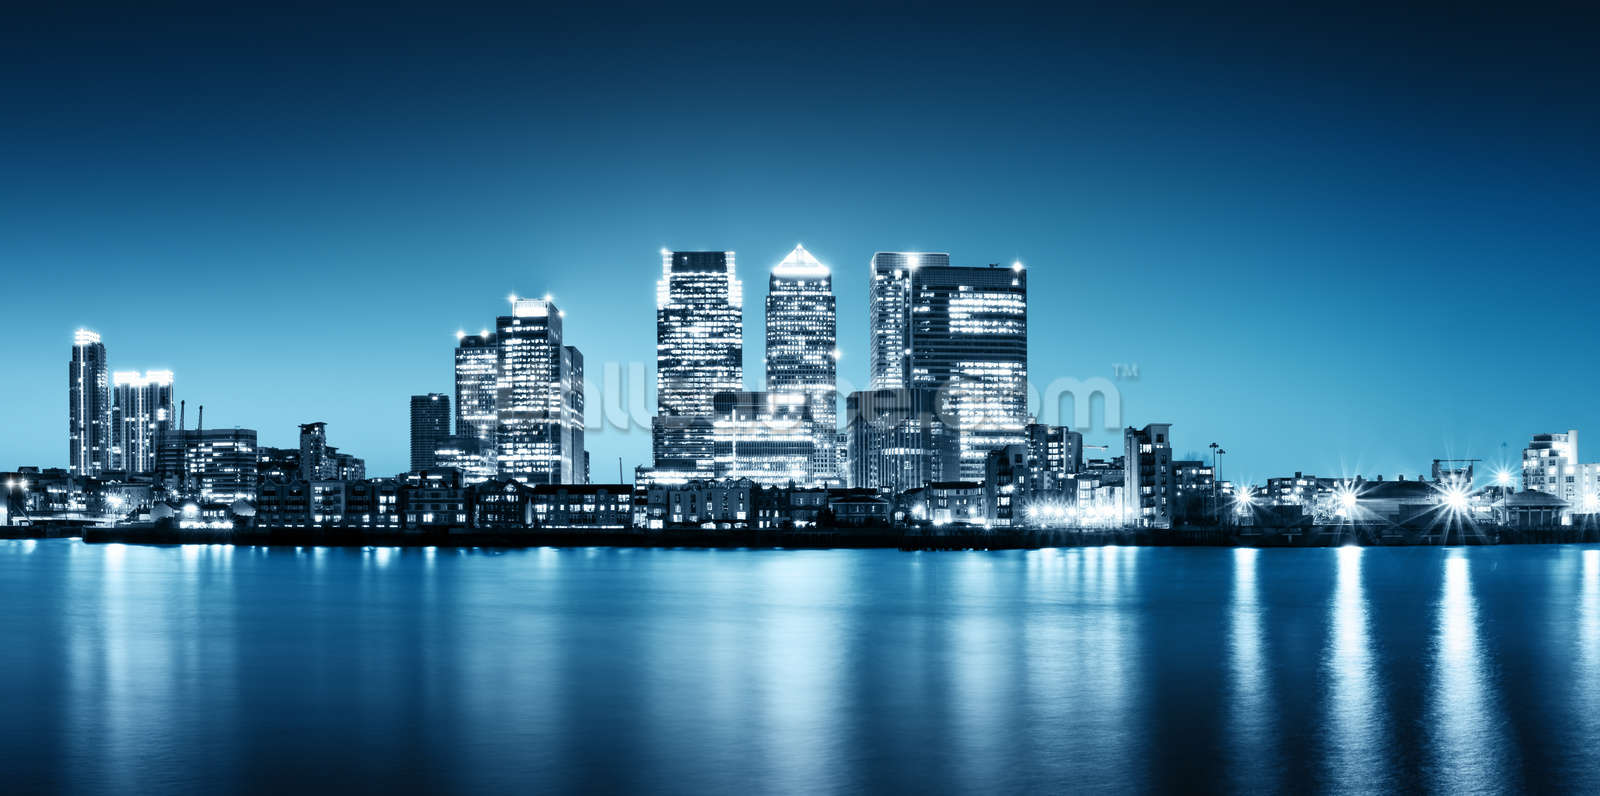 canary wharf from greenwich wallpaper wall mural wallsauce wall mural photo wallpaper